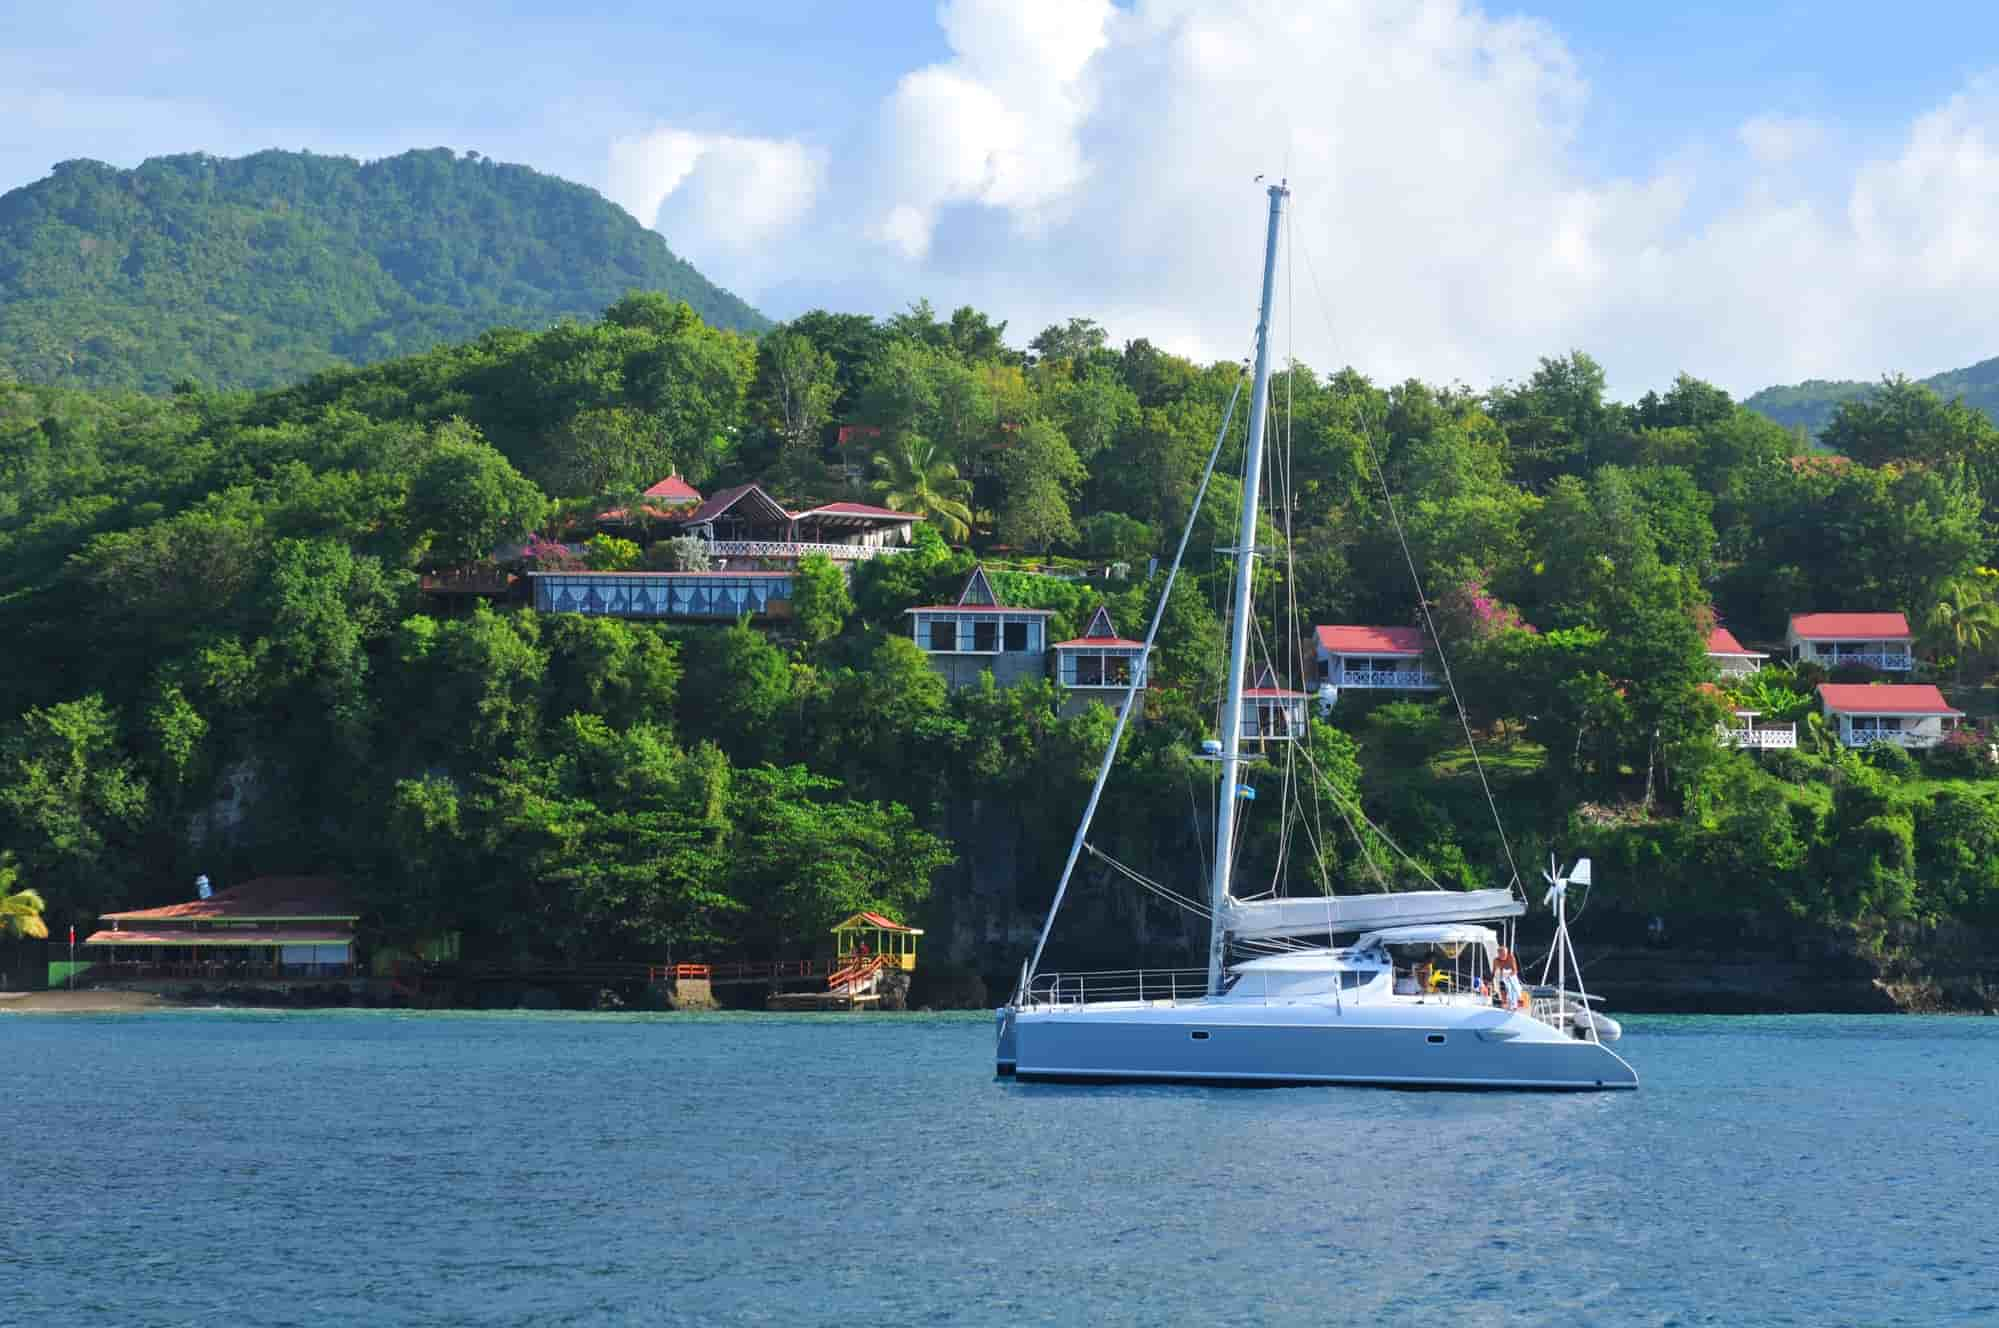 COMMONWEALTH OF DOMINICA CITIZENSHIP BY INVESTMENT PROGRAM